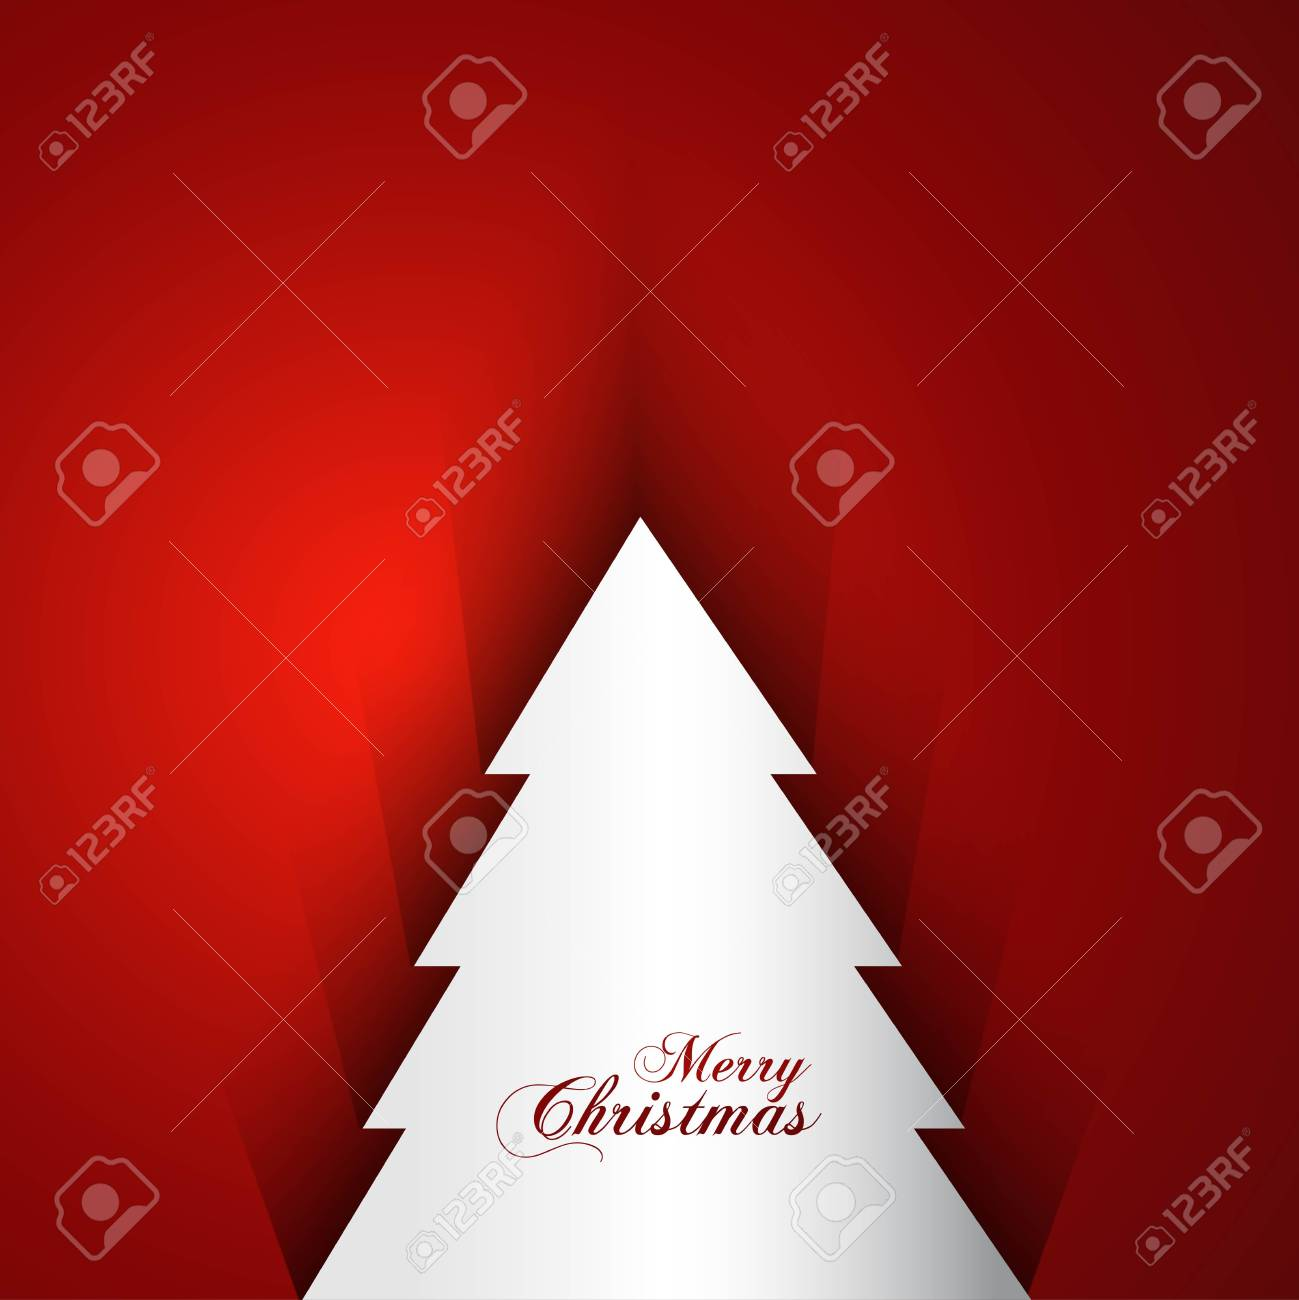 merry christmas tree bright red colorful background card vector Stock Vector - 18153424